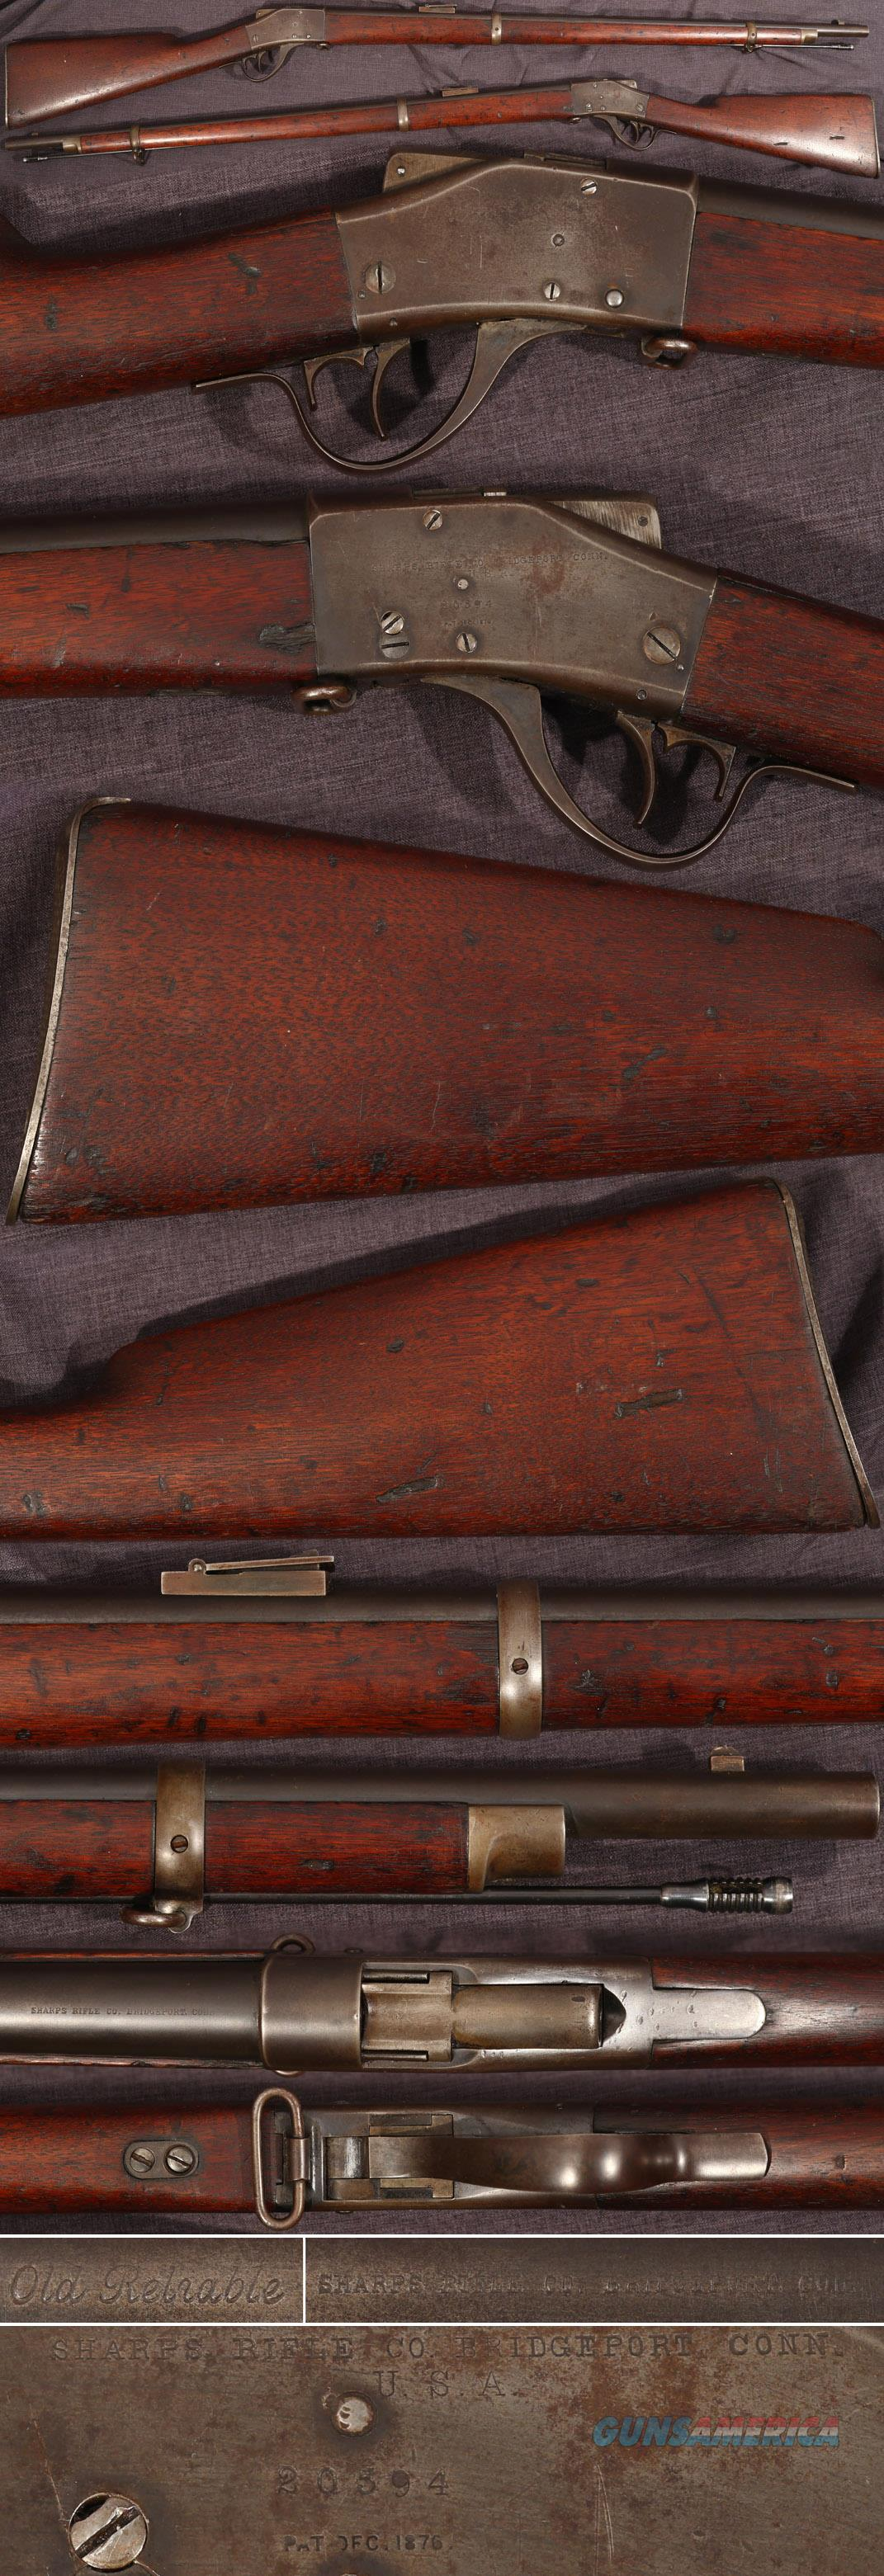 M1878 Sharps-Borchardt 45-70 military rifle  Guns > Rifles > Sharps Rifles - Pre-1899